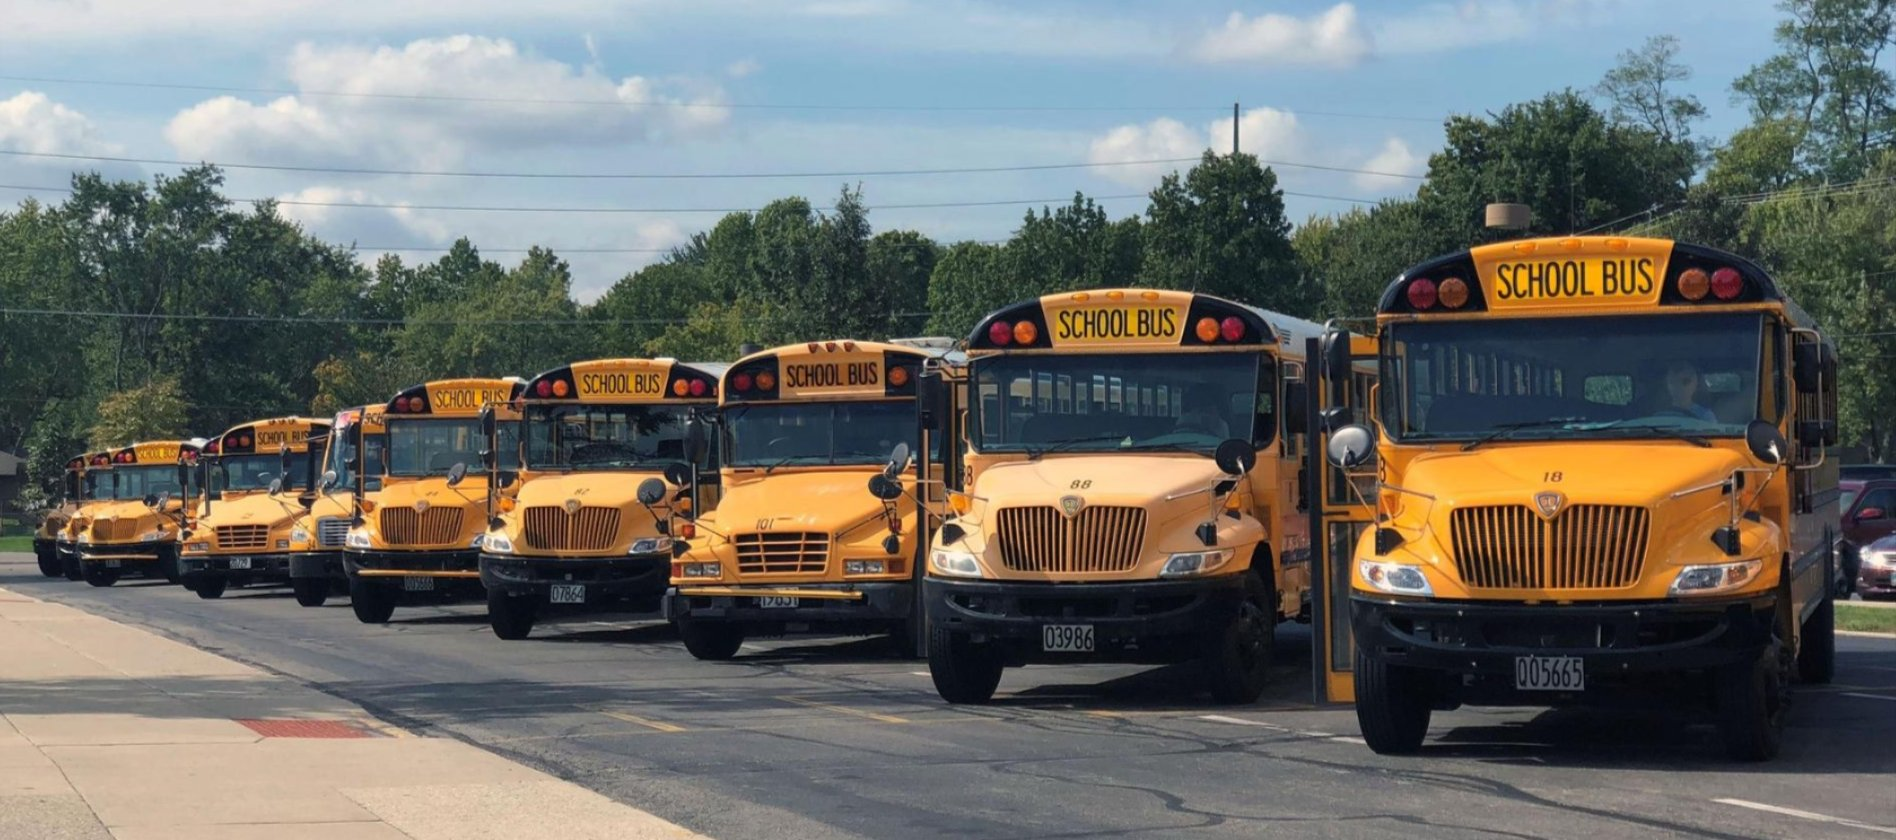 Image of school buses parked at Centerville High School